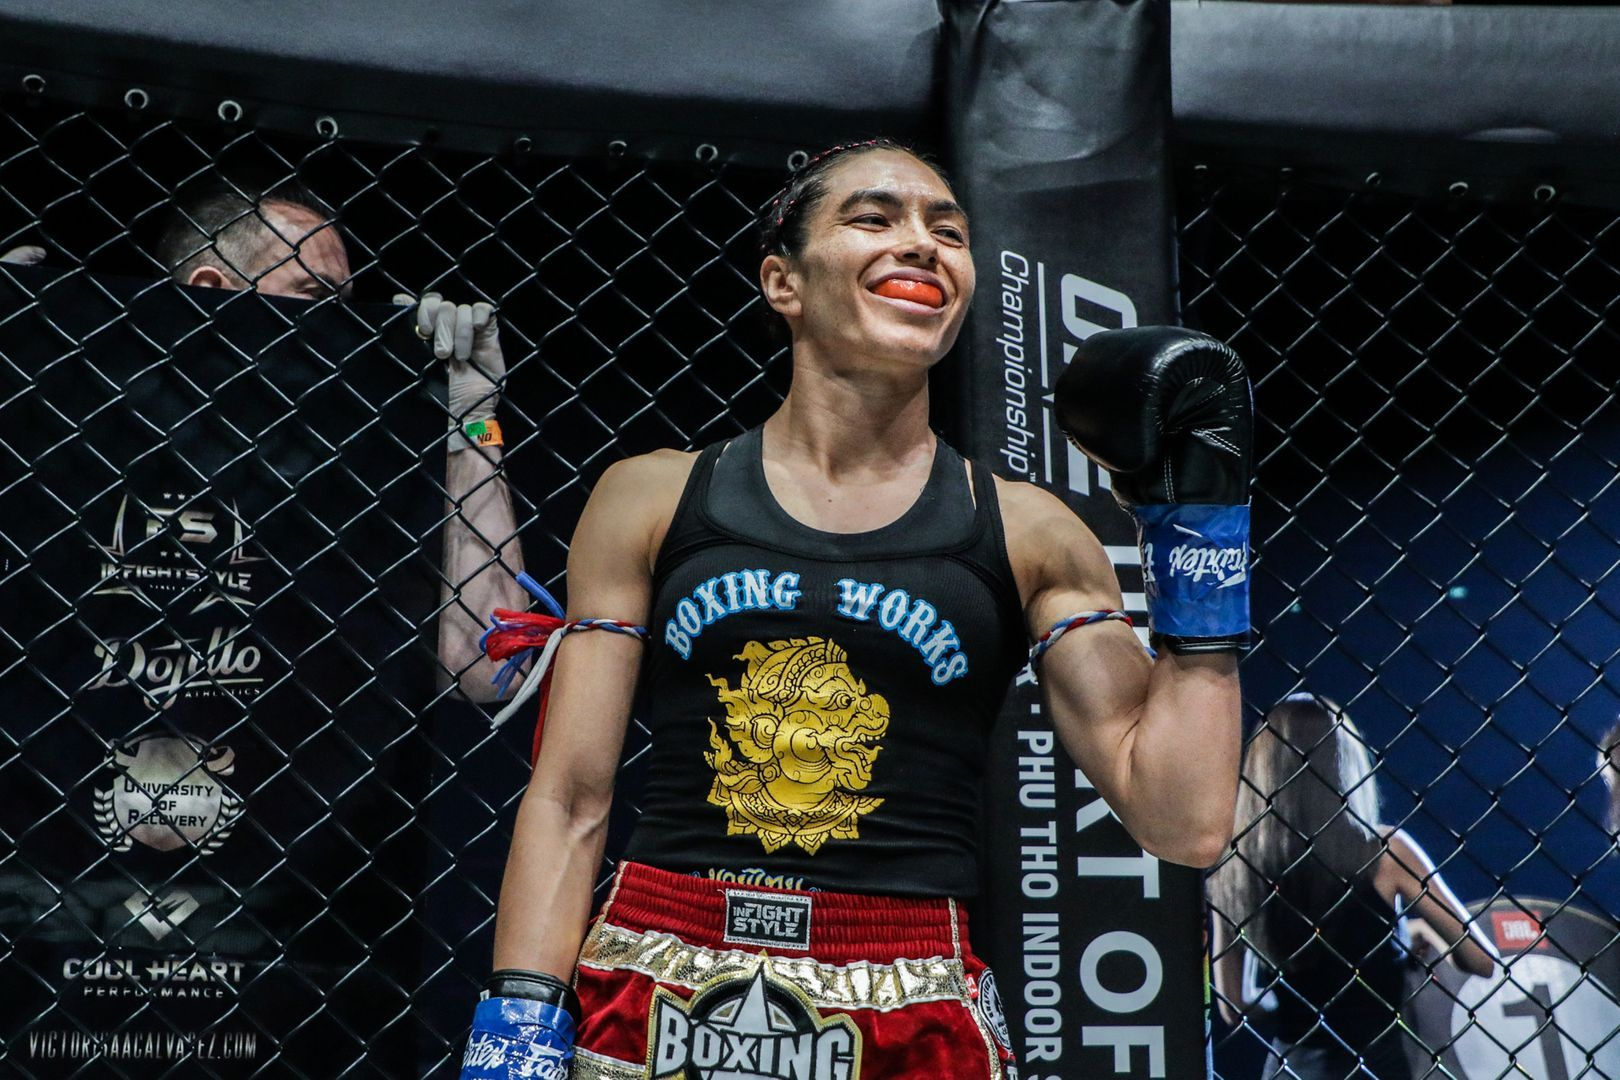 Janet Todd wears a mouthguard and looks ready for her match against Stamp Fairtex